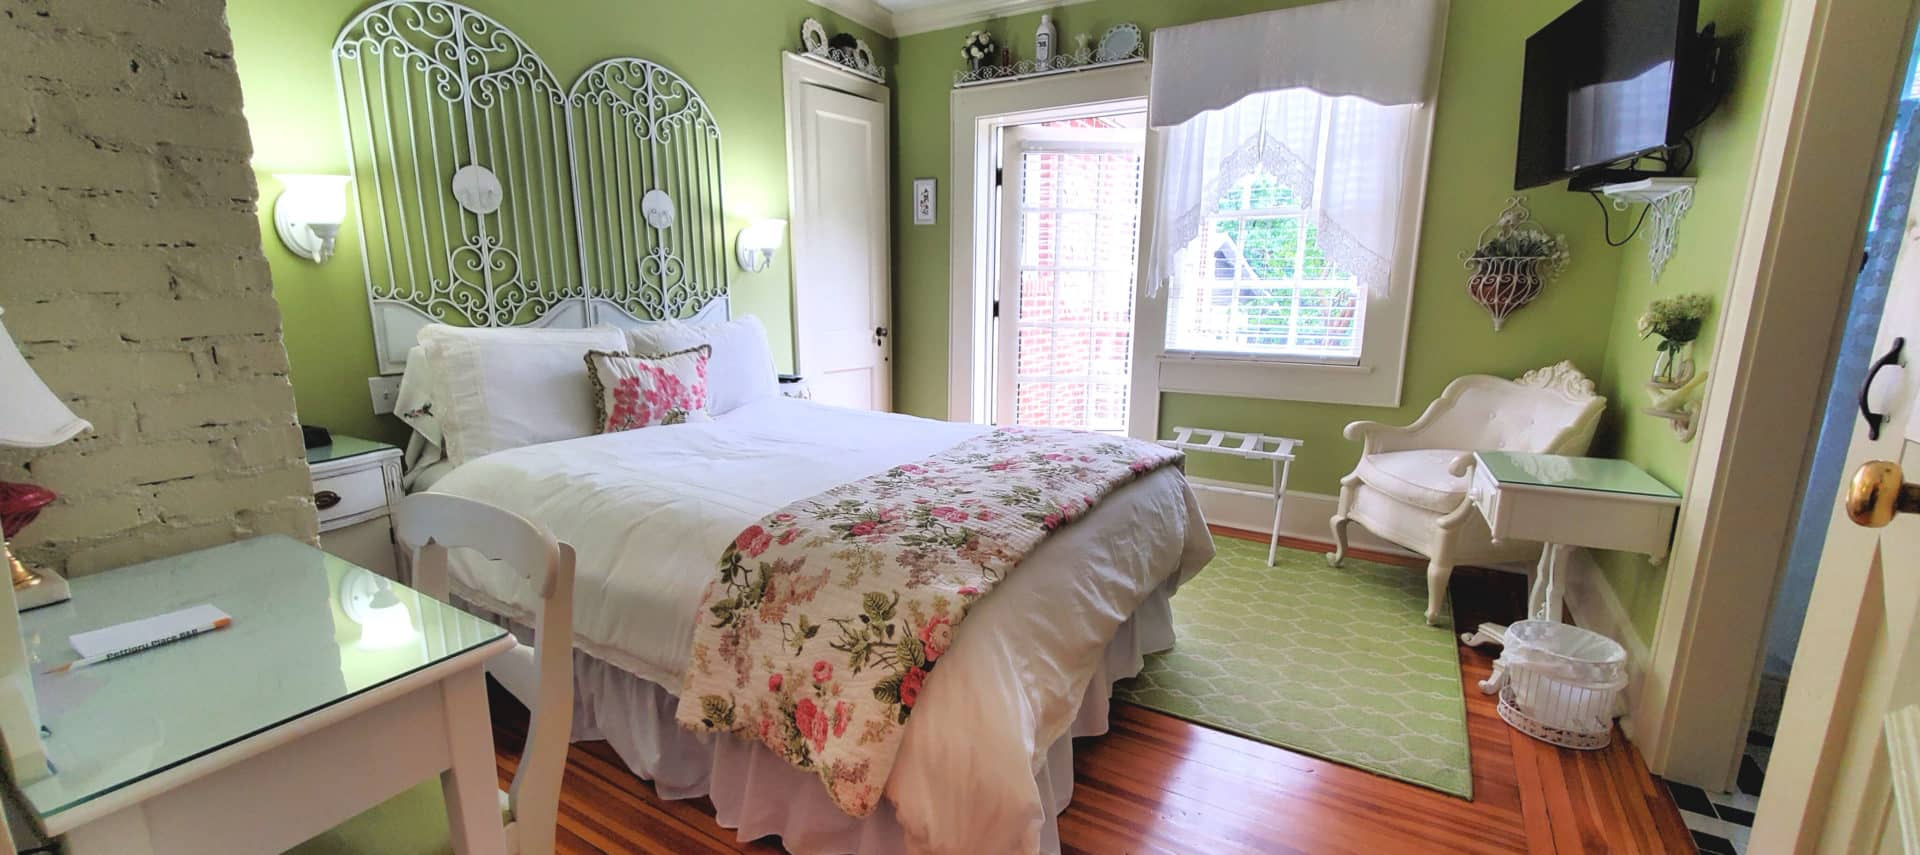 Guest room with queen bed, large screen television, desk and chair. Open patio door.